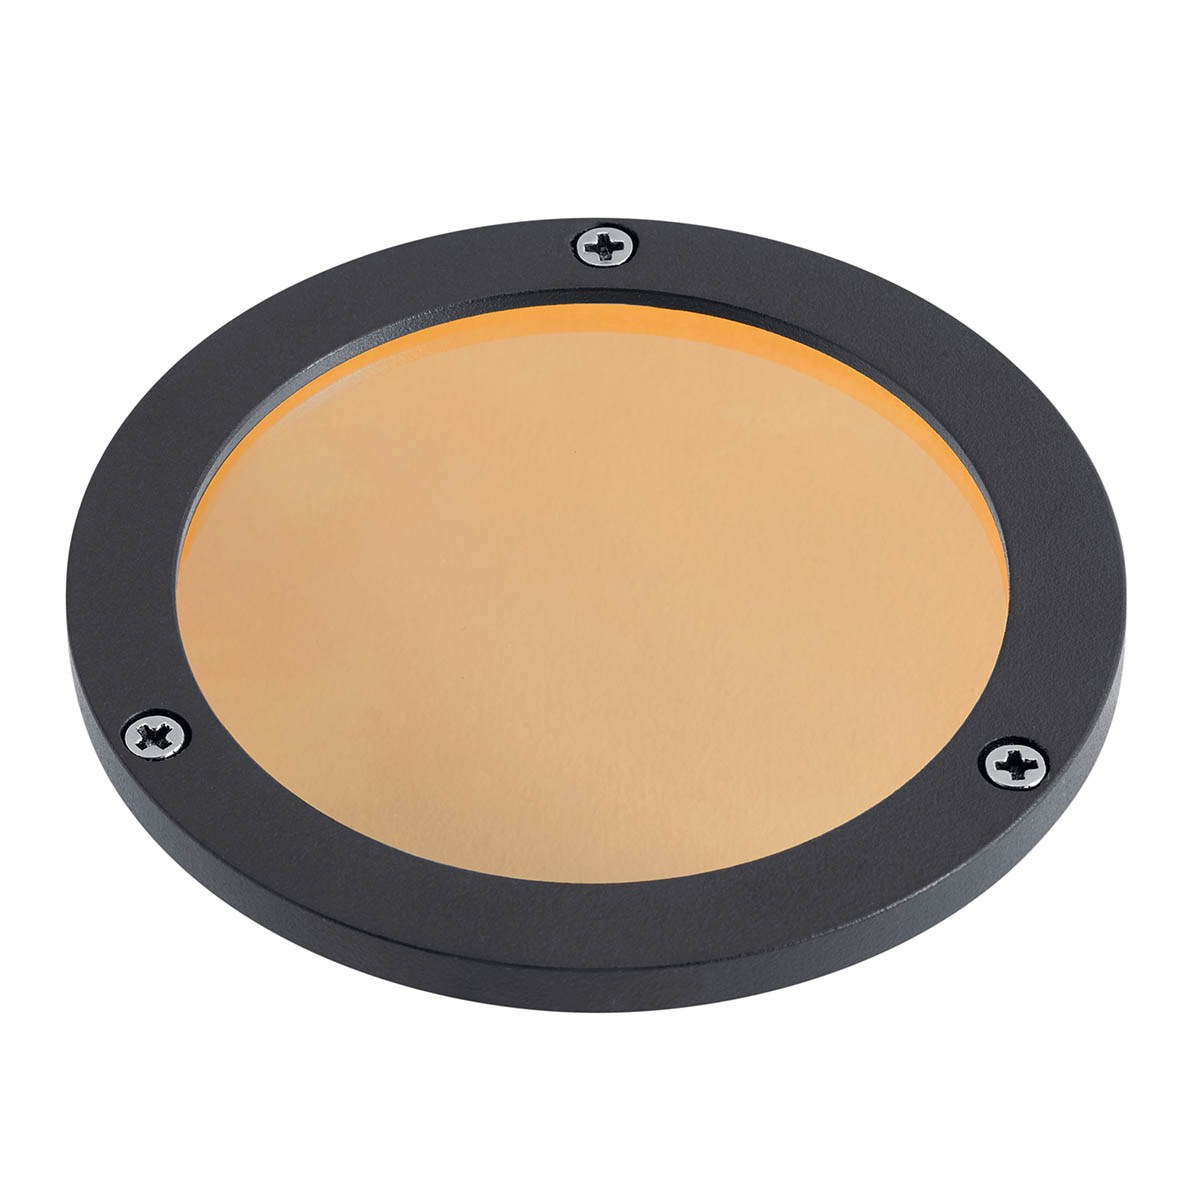 C-Series Large Amber Lens Textured Black